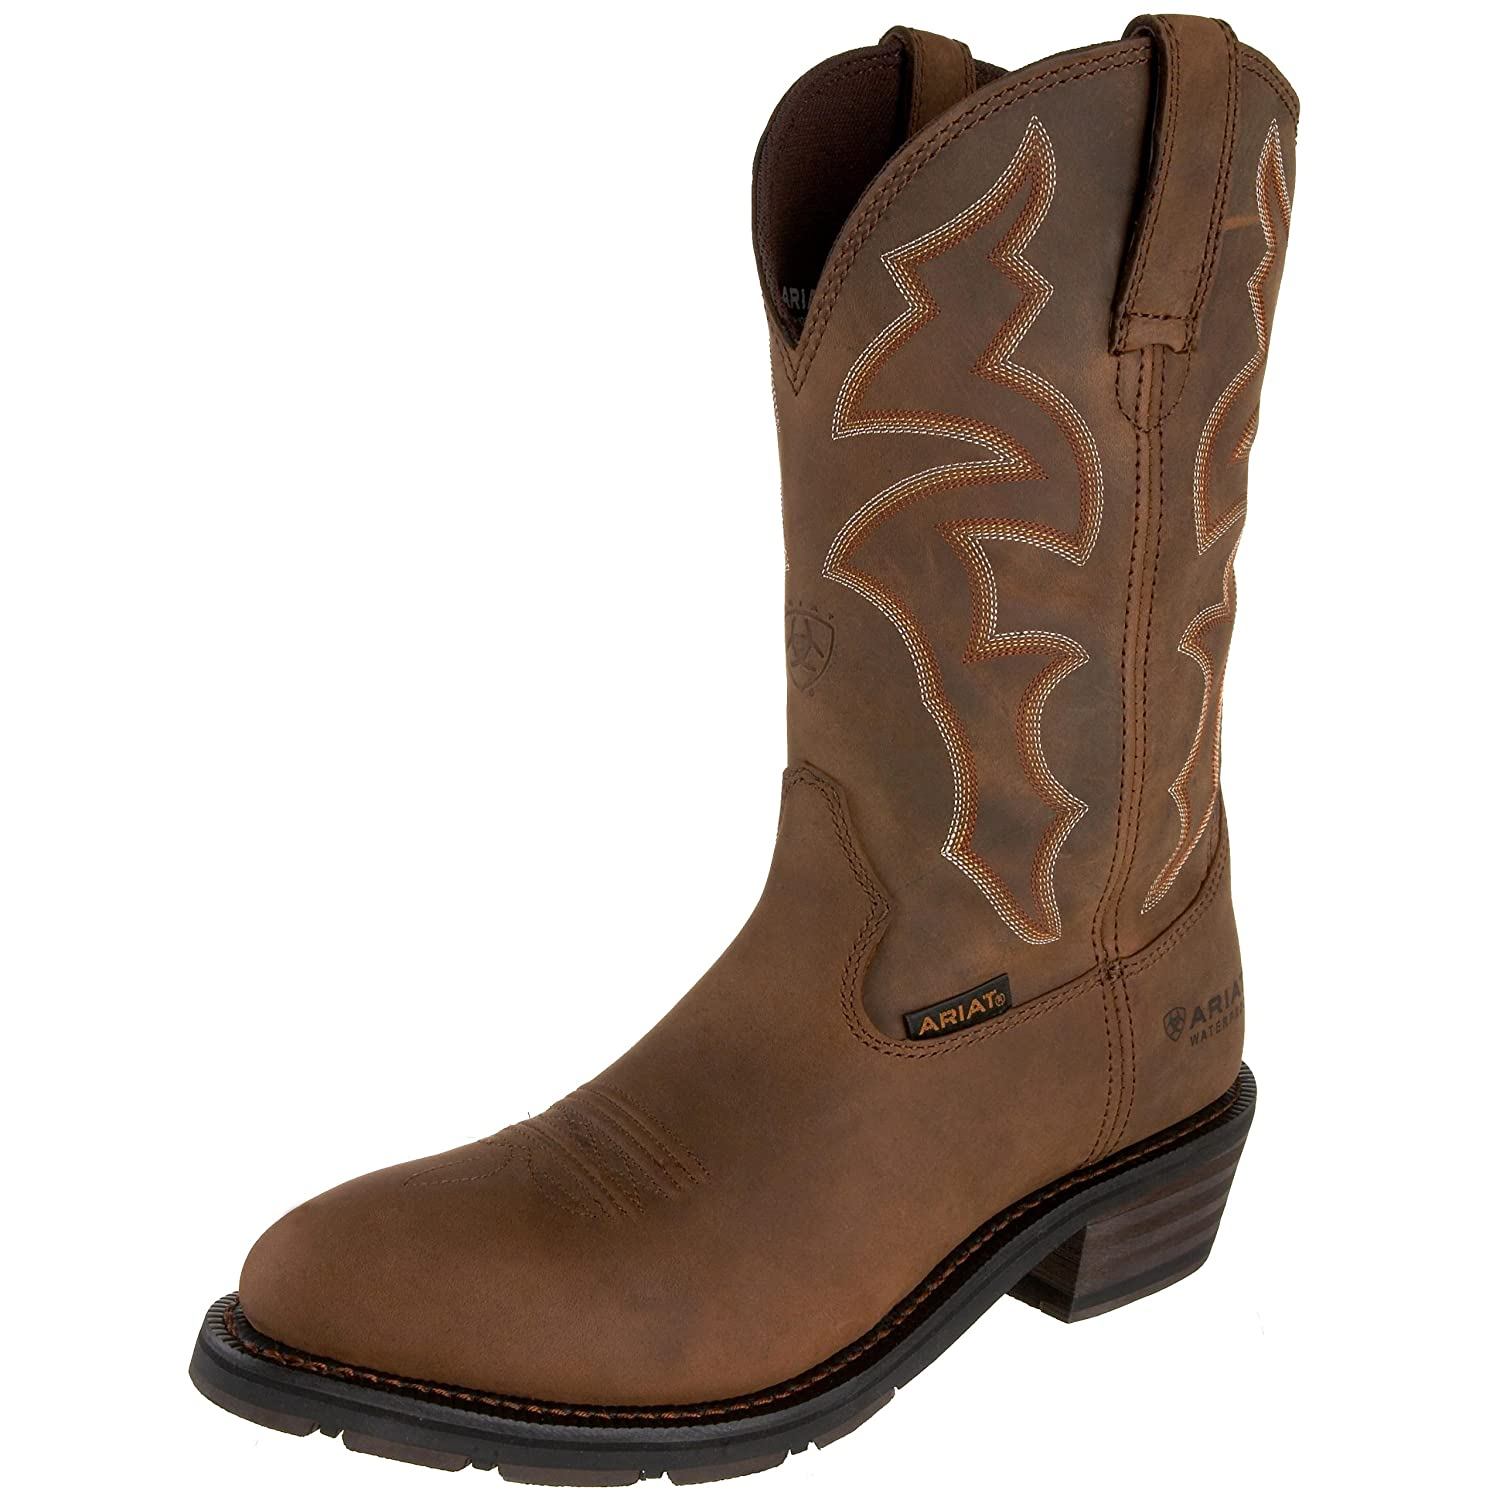 Ariat メンズ Ironside H2O B0035LCXZ6 12 D(M) US|Dusted Brown Dusted Brown 12 D(M) US